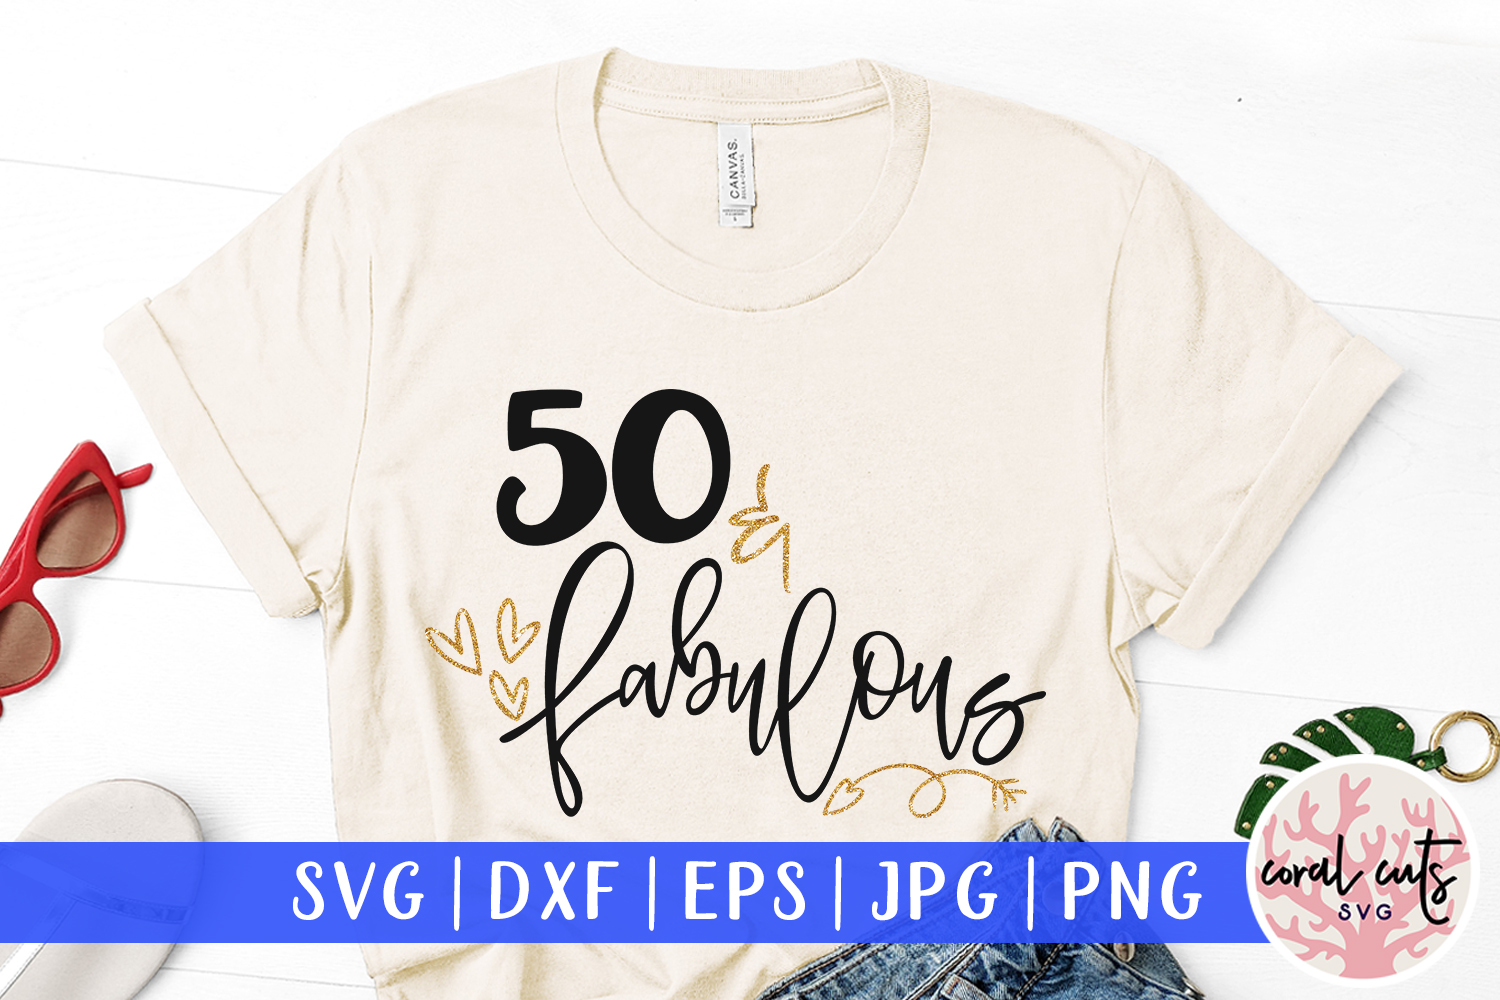 Download Free 50 Fabulous Cut File Graphic By Coralcutssvg Creative Fabrica for Cricut Explore, Silhouette and other cutting machines.